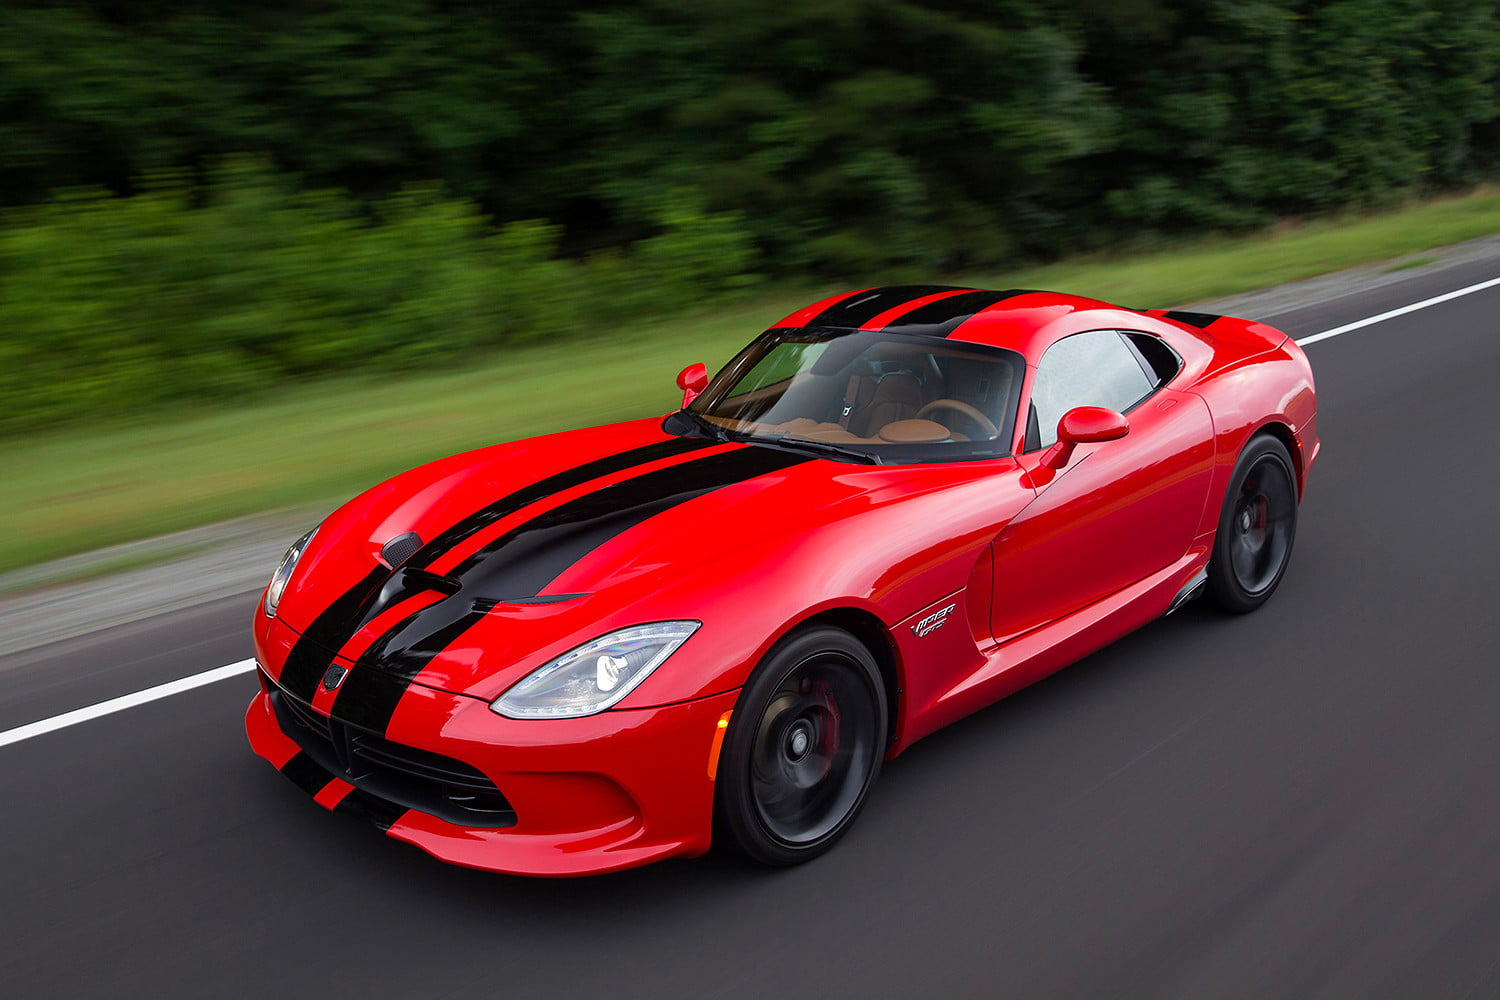 Dodge Viper Isn't Coming Back, FCA CEO Marchionne Says | Digital Trends